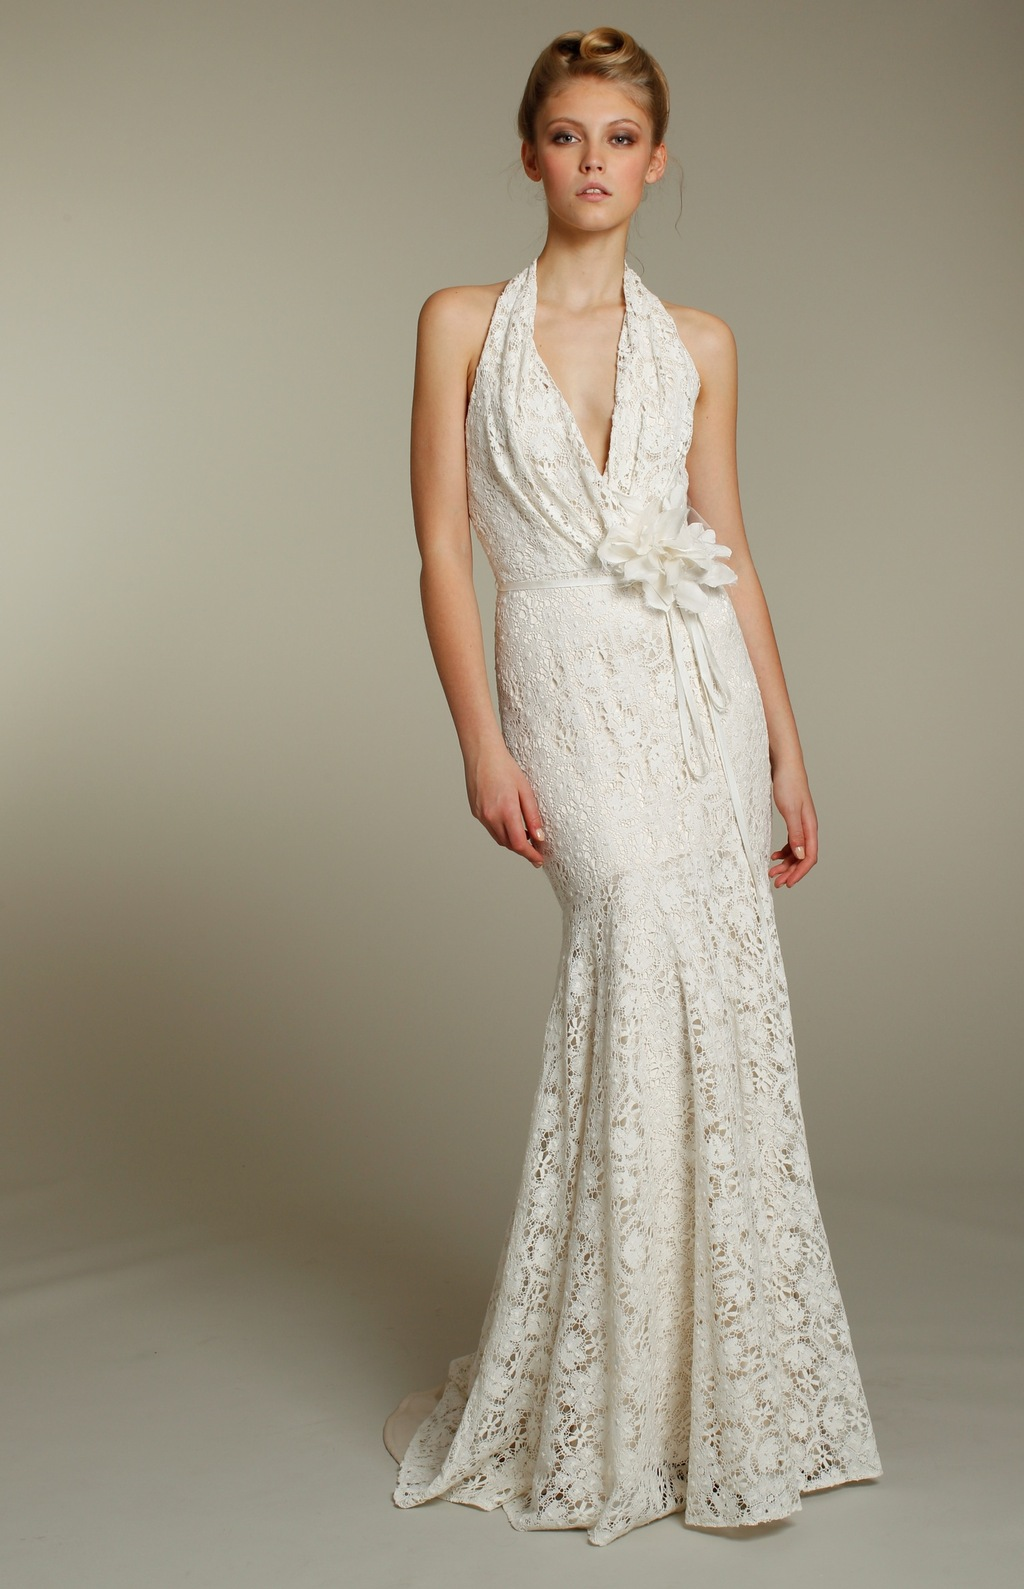 1152-blush-wedding-dress-2011-bridal-gowns-ivory-halter-lace-mermaid-front.full